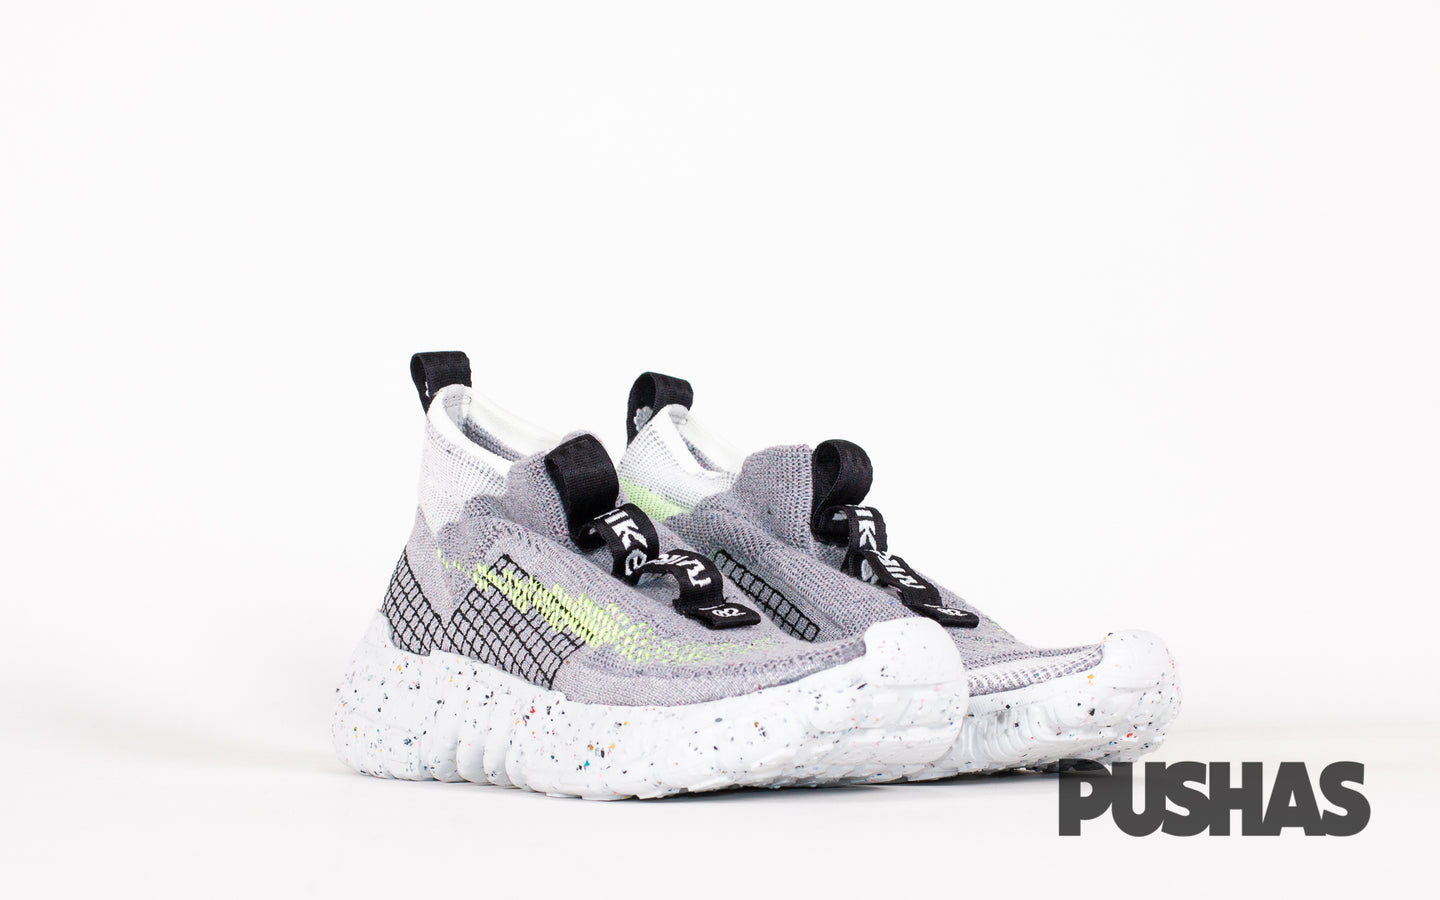 pushas-nike-Space-Hippie-02-Grey-Volt